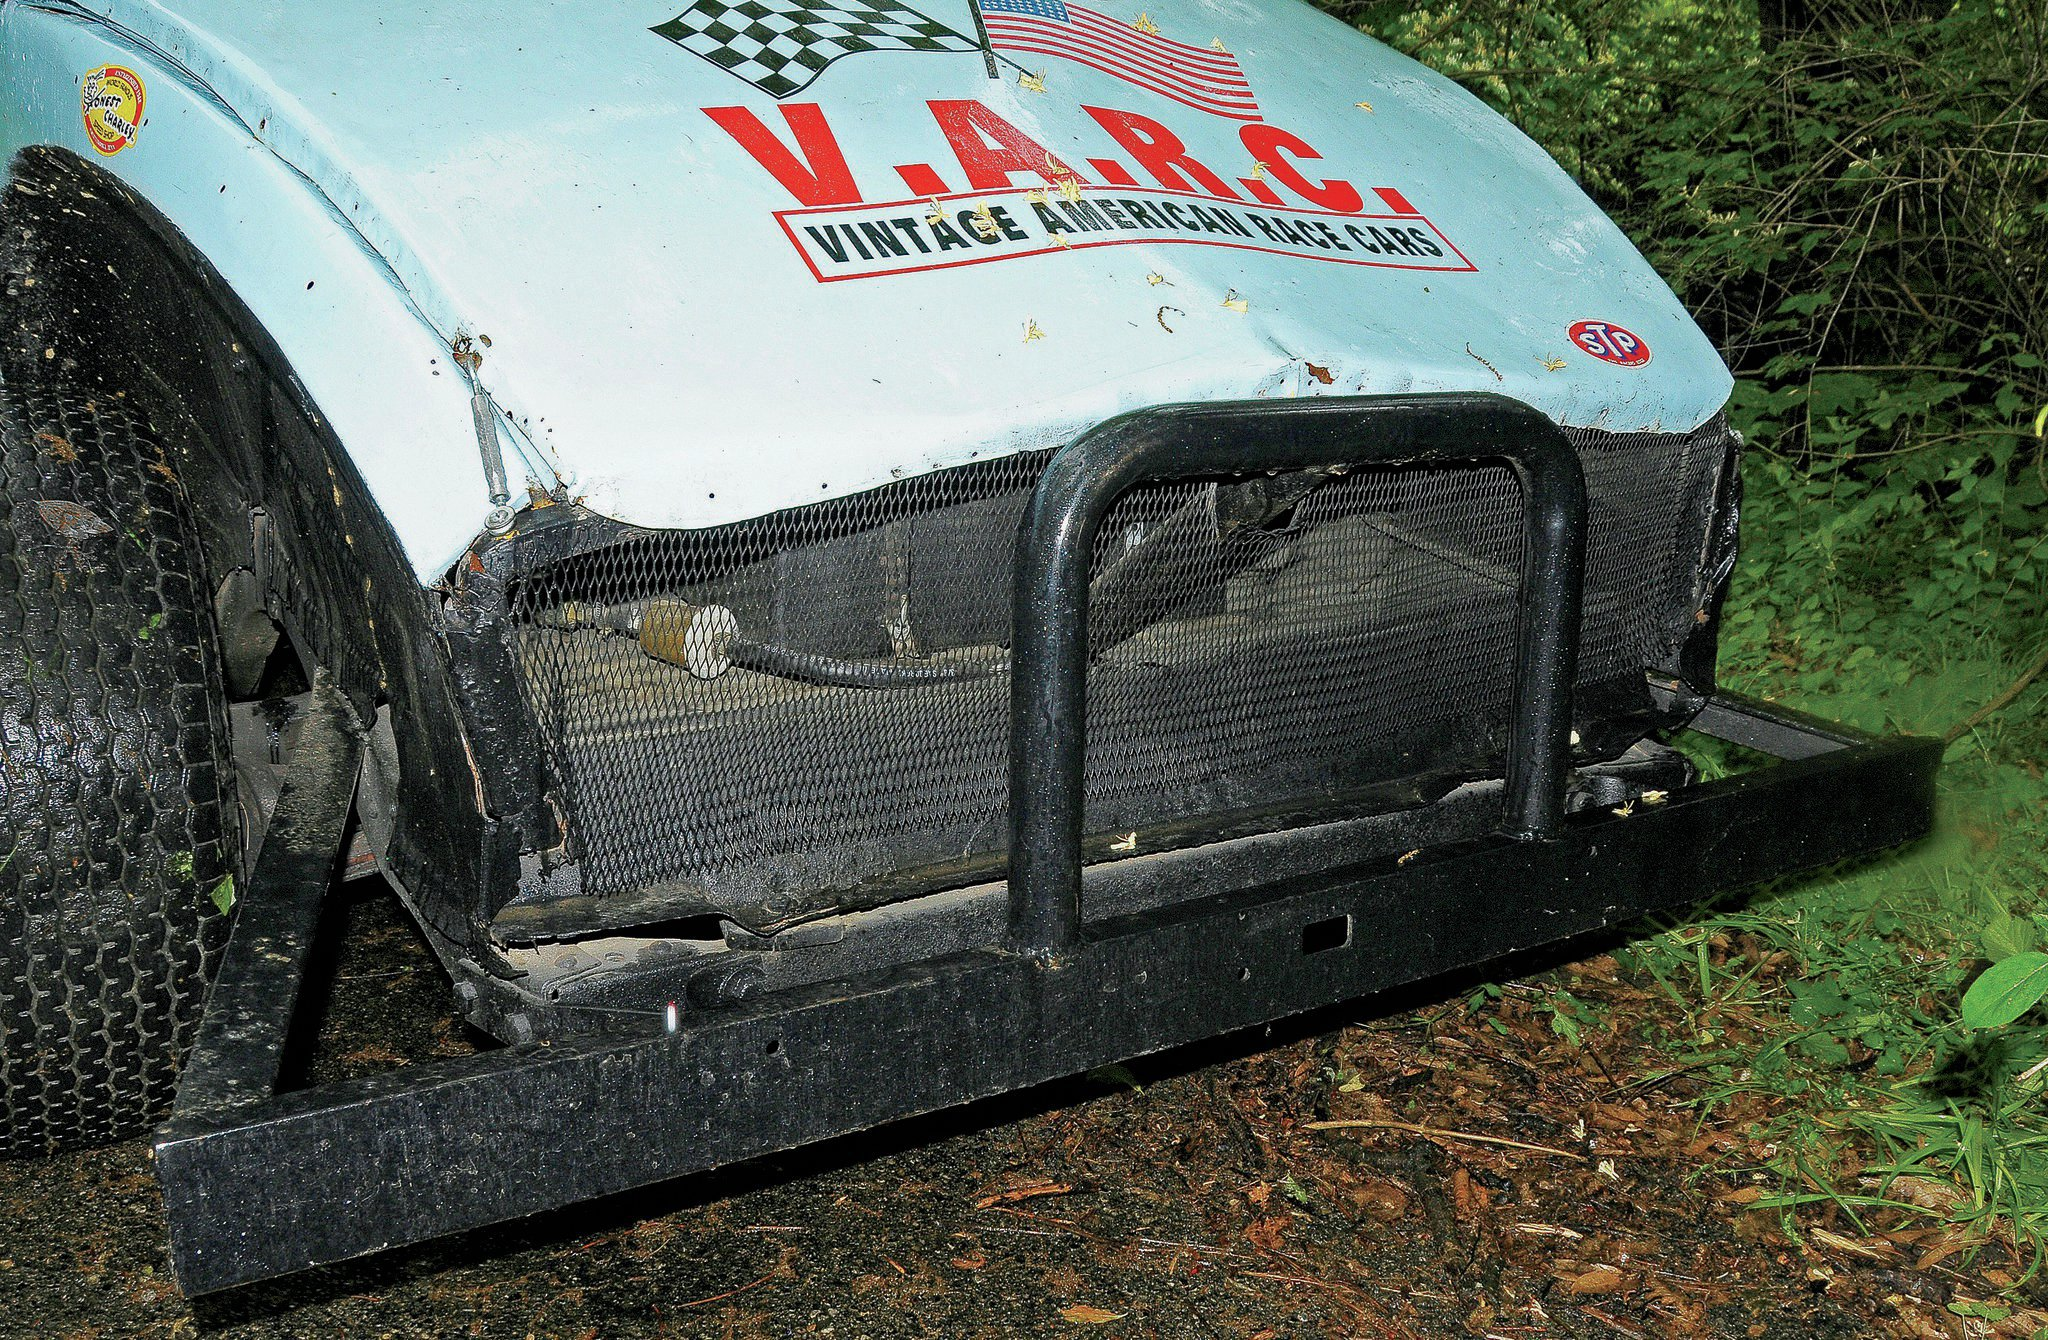 The rearend of this car has been shortened about 6 inches, allowing for a vertical screen to be installed, which allows an exit for air passing through the body.